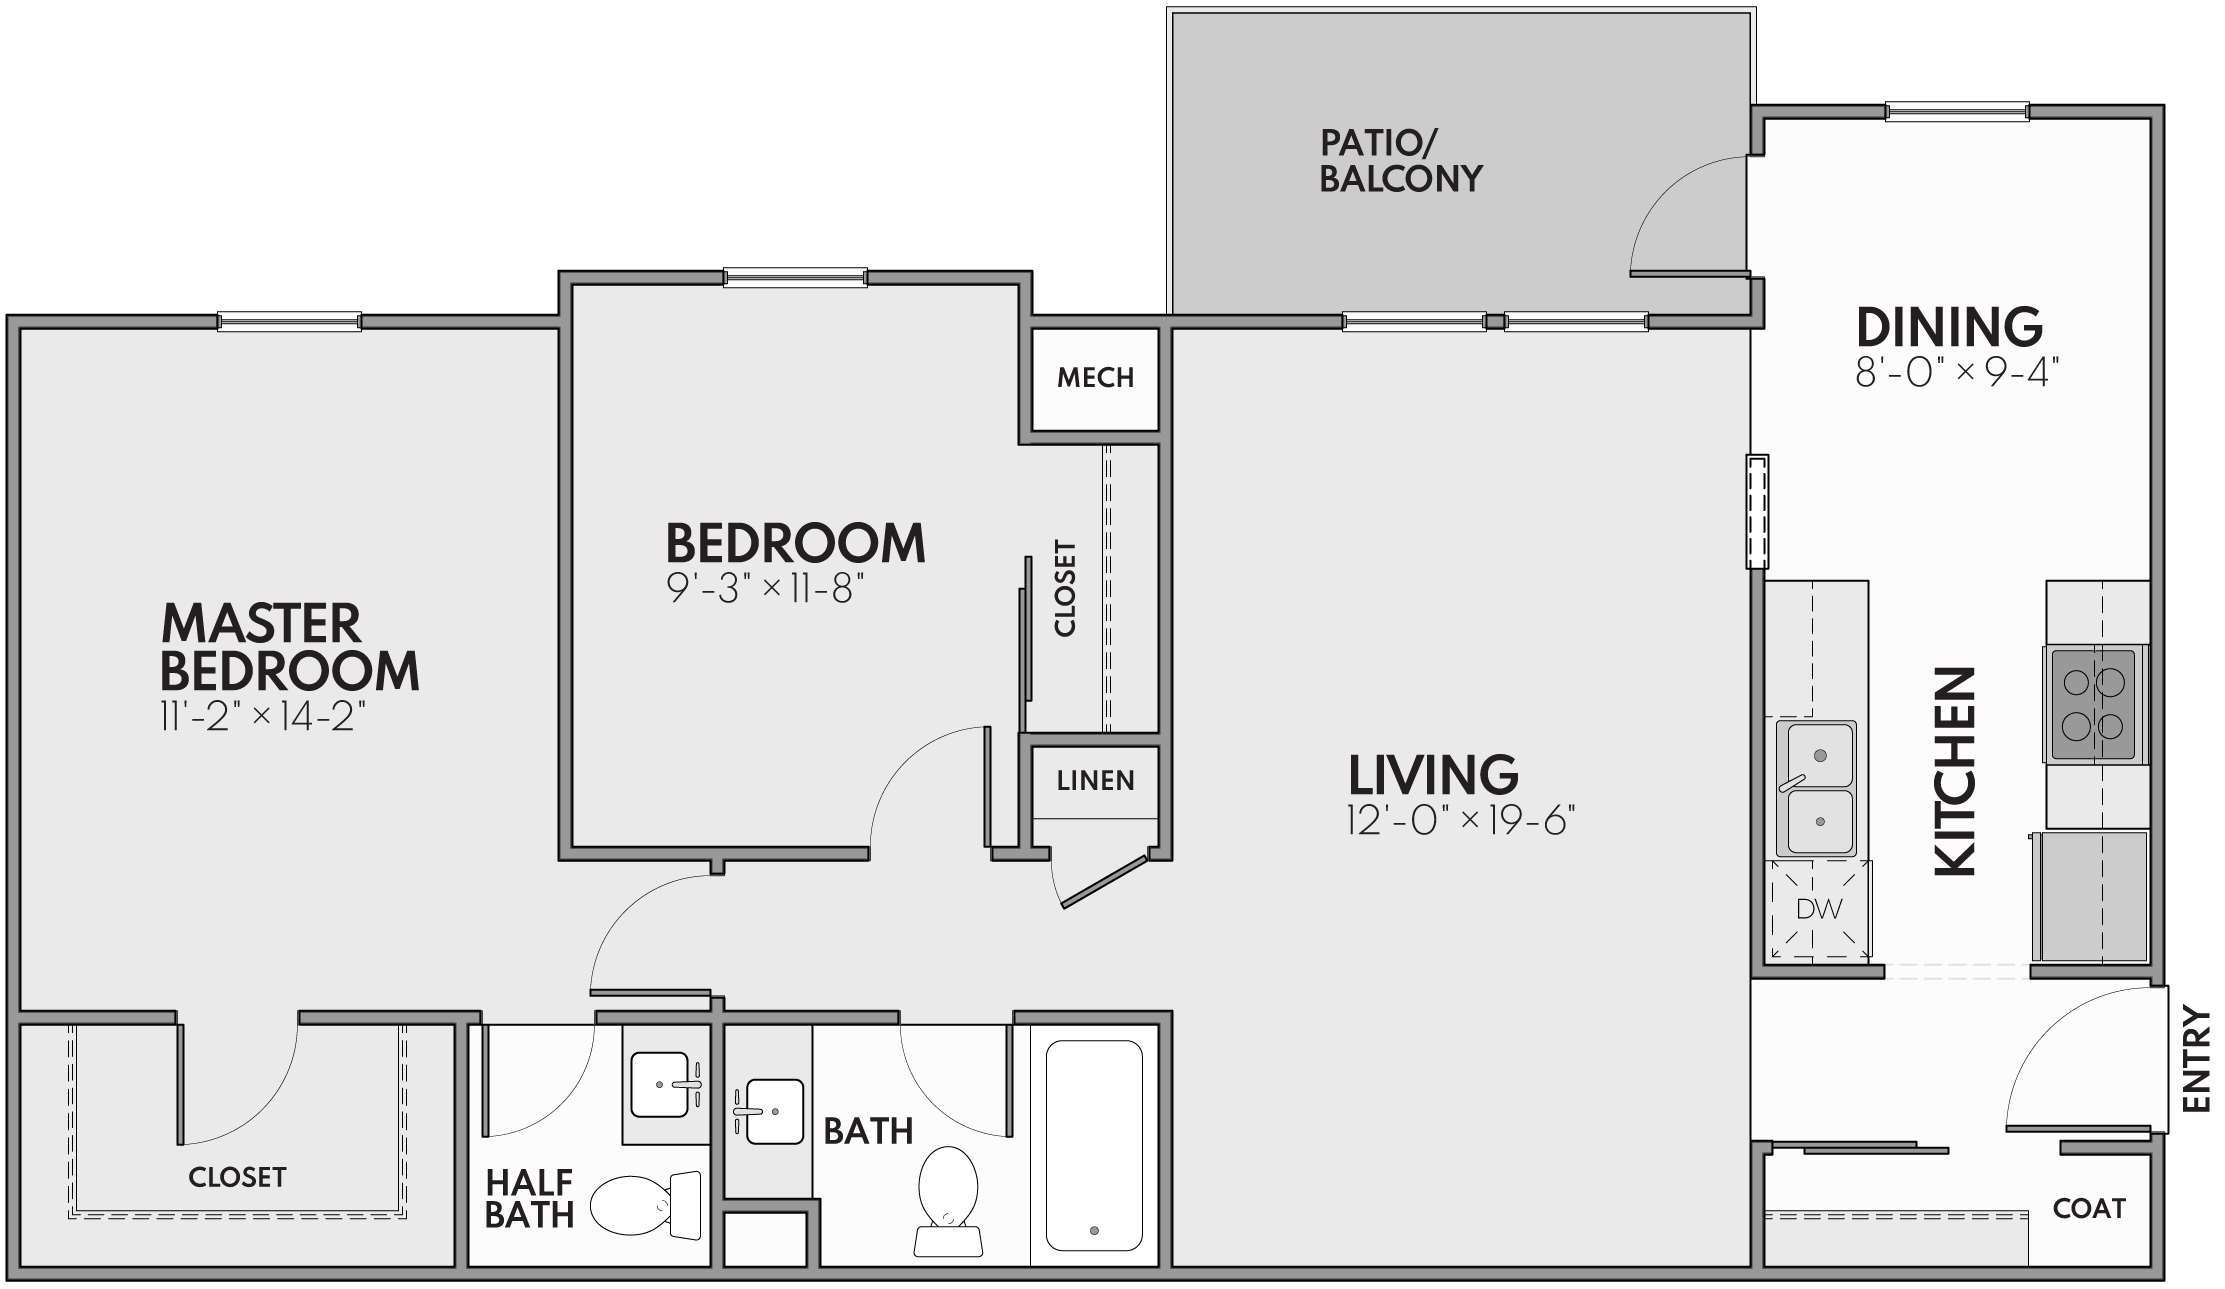 The Plymouth Floor Plan